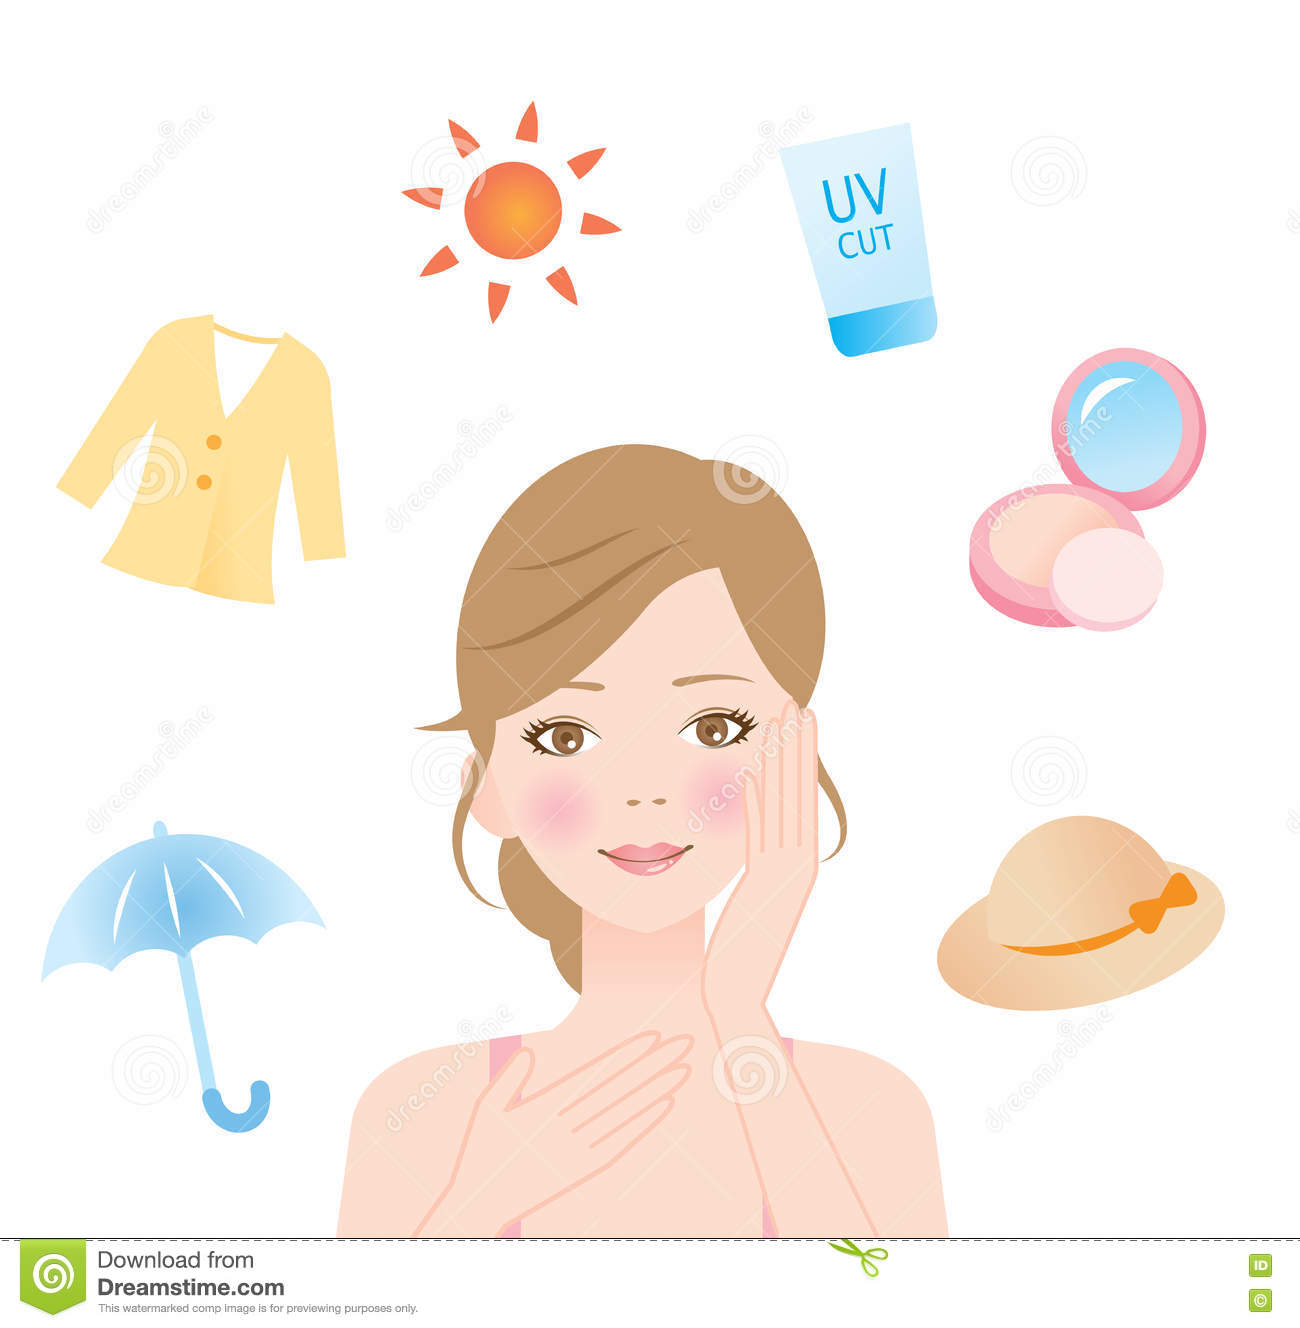 0d8b551c5e3 Woman protect her skin from ultraviolet rays with a hat, foundation,  sunscreen, sun protective clothing, and a parasol.